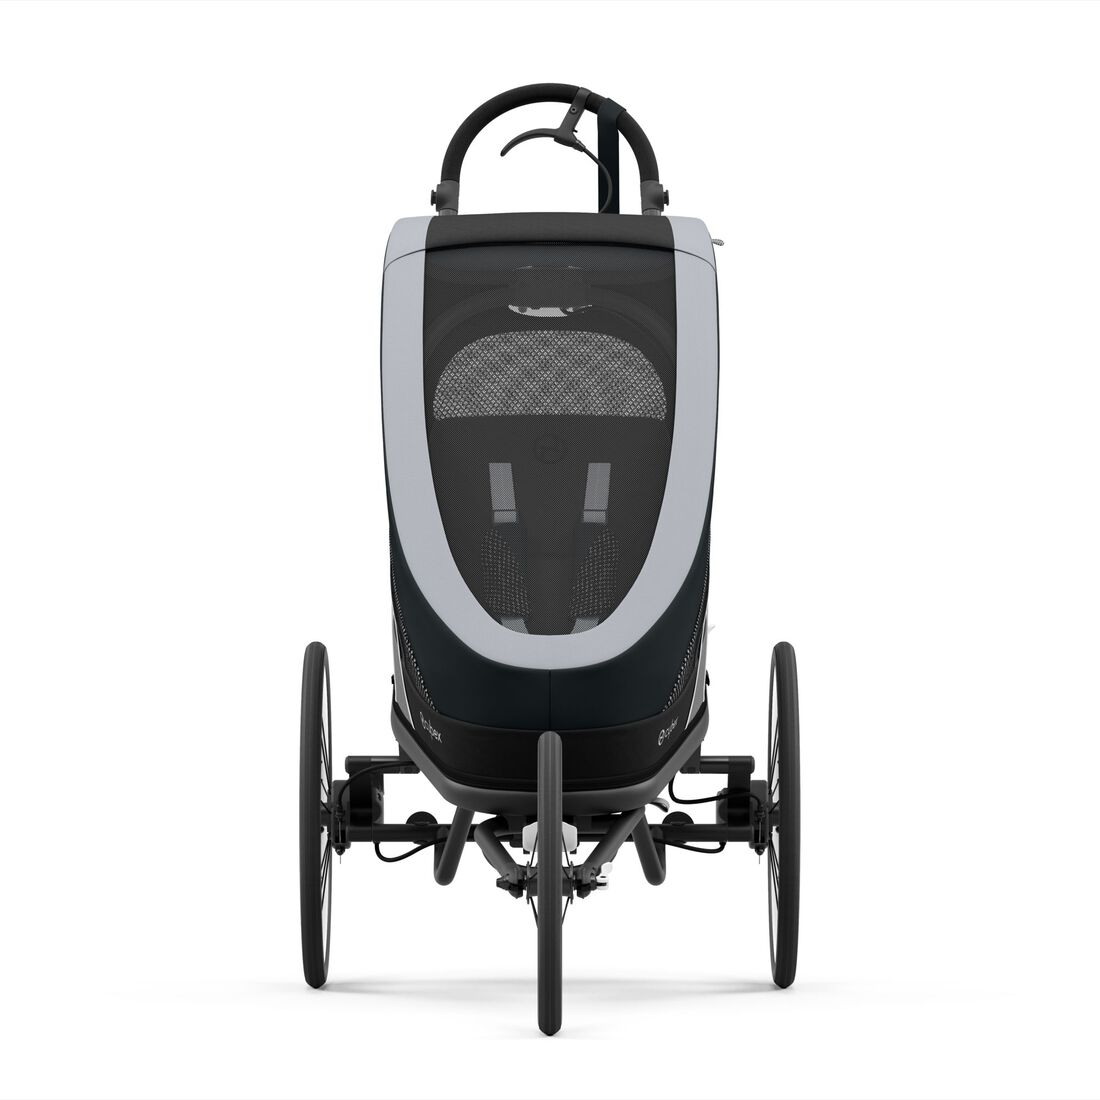 CYBEX Zeno Seat Pack - All Black in All Black large